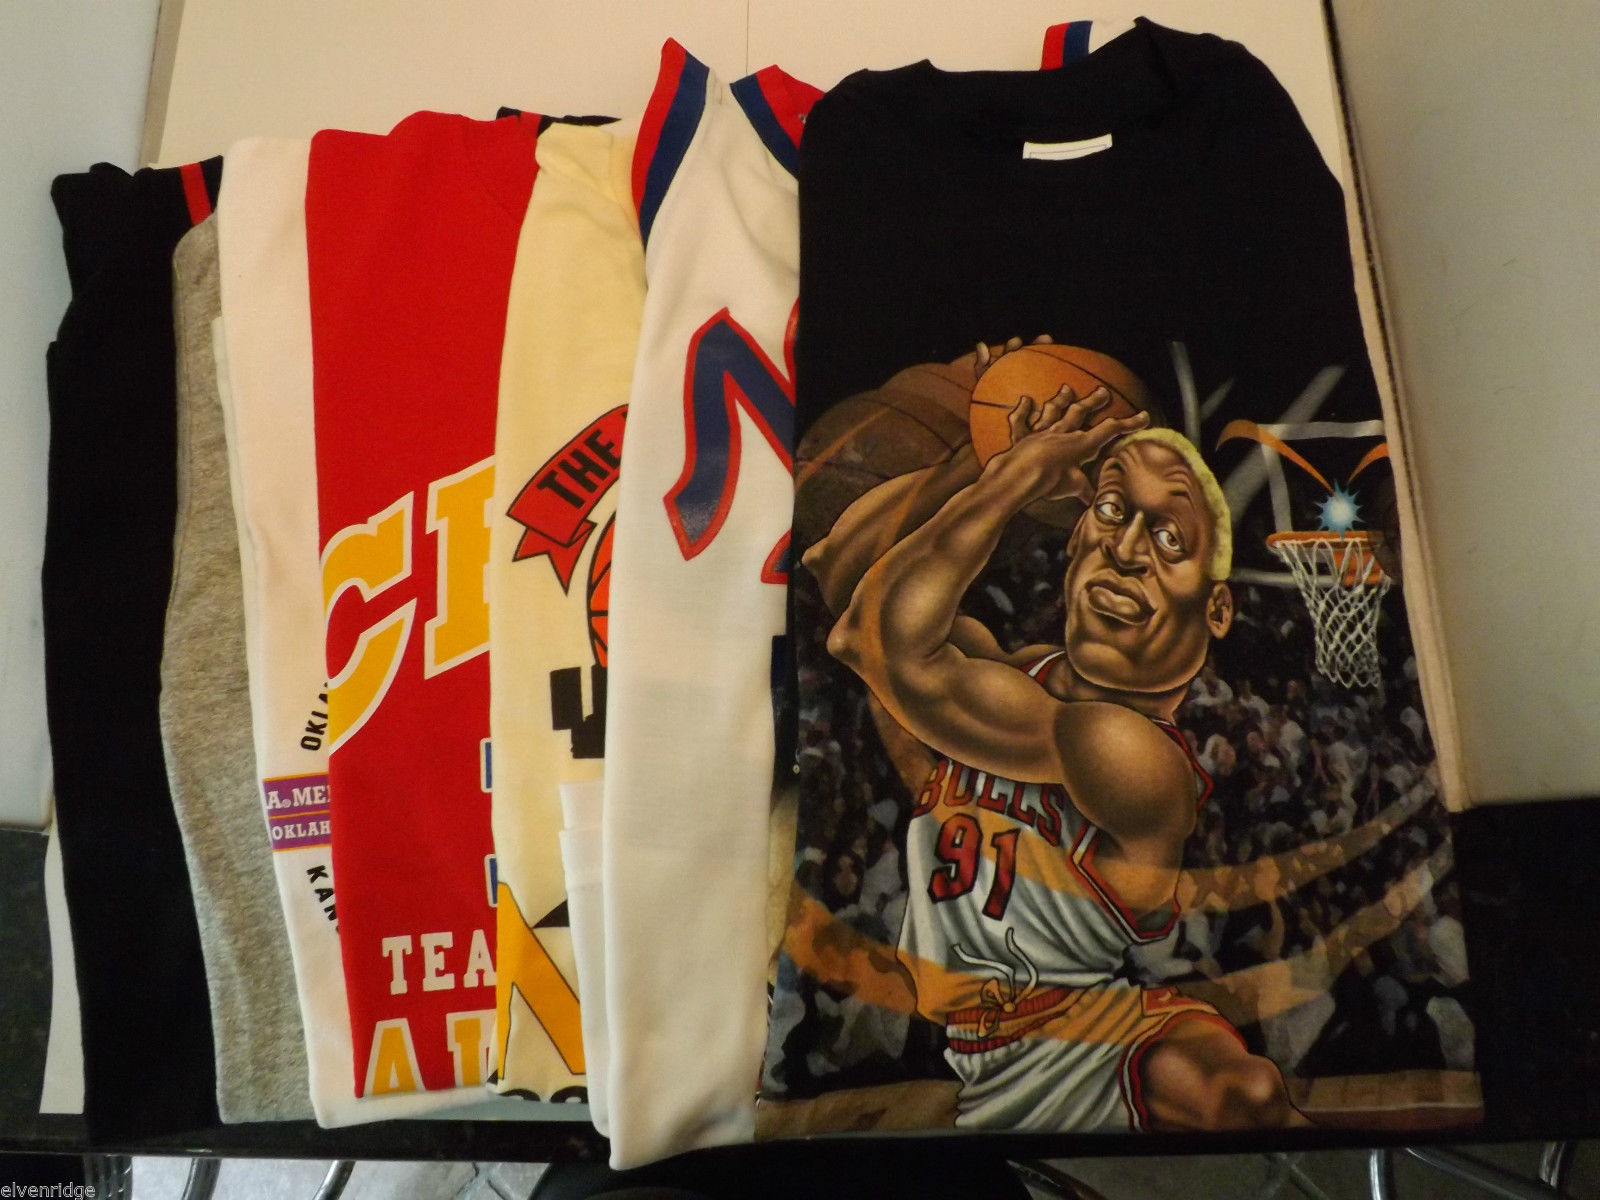 Lot of 7 Vintage Basketball/Football Shirts Size XL/XXL